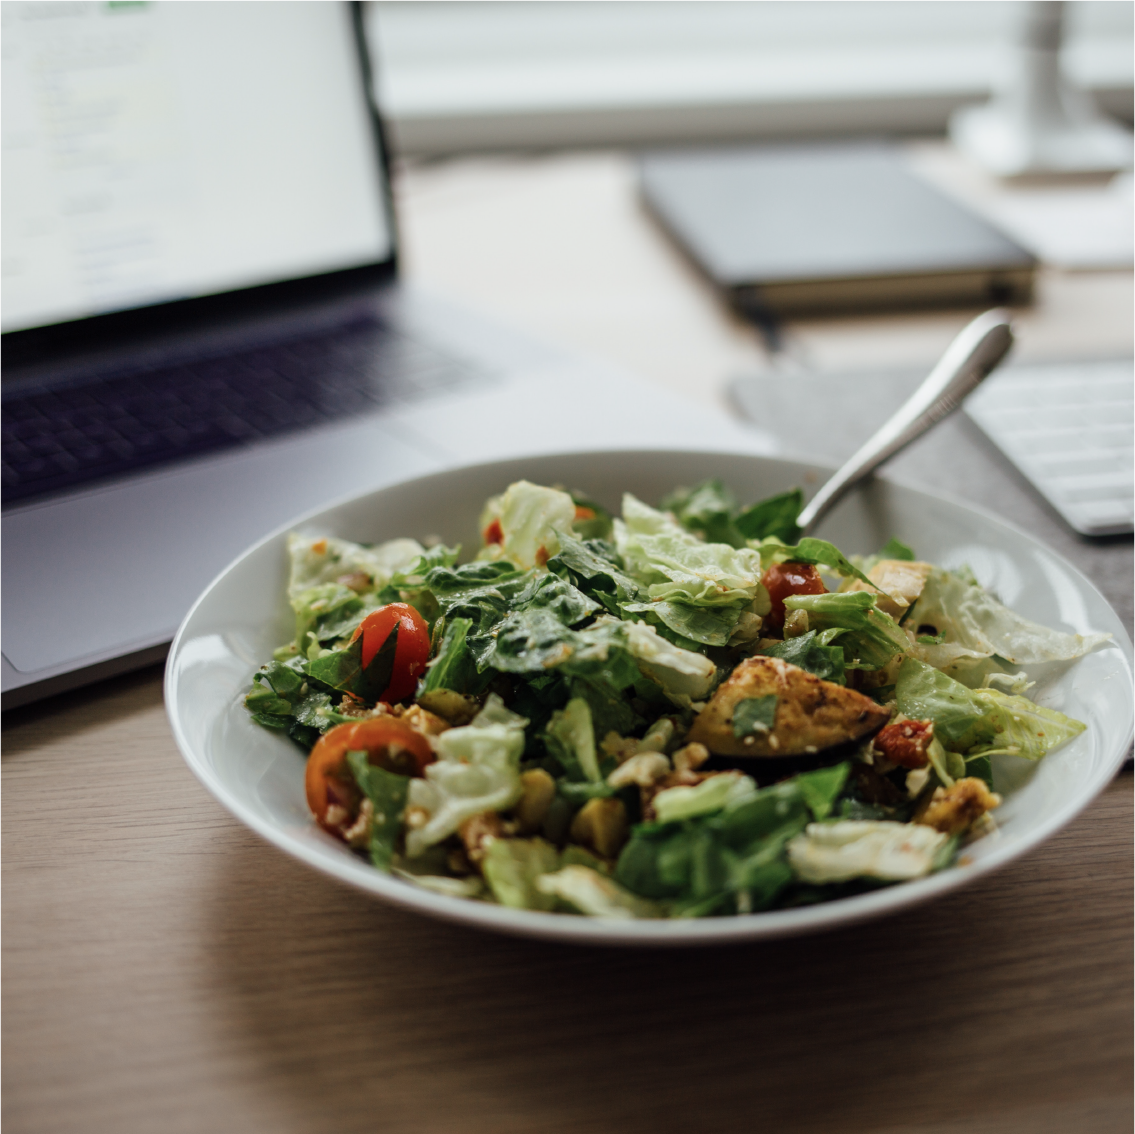 Try packing your lunch — it's healthier for you and your wallet. Americans spend about $3,000 eating out for lunch, that could be more money in your pocket #DollarsAndSense #Opptimize 📷:@nielsenramon